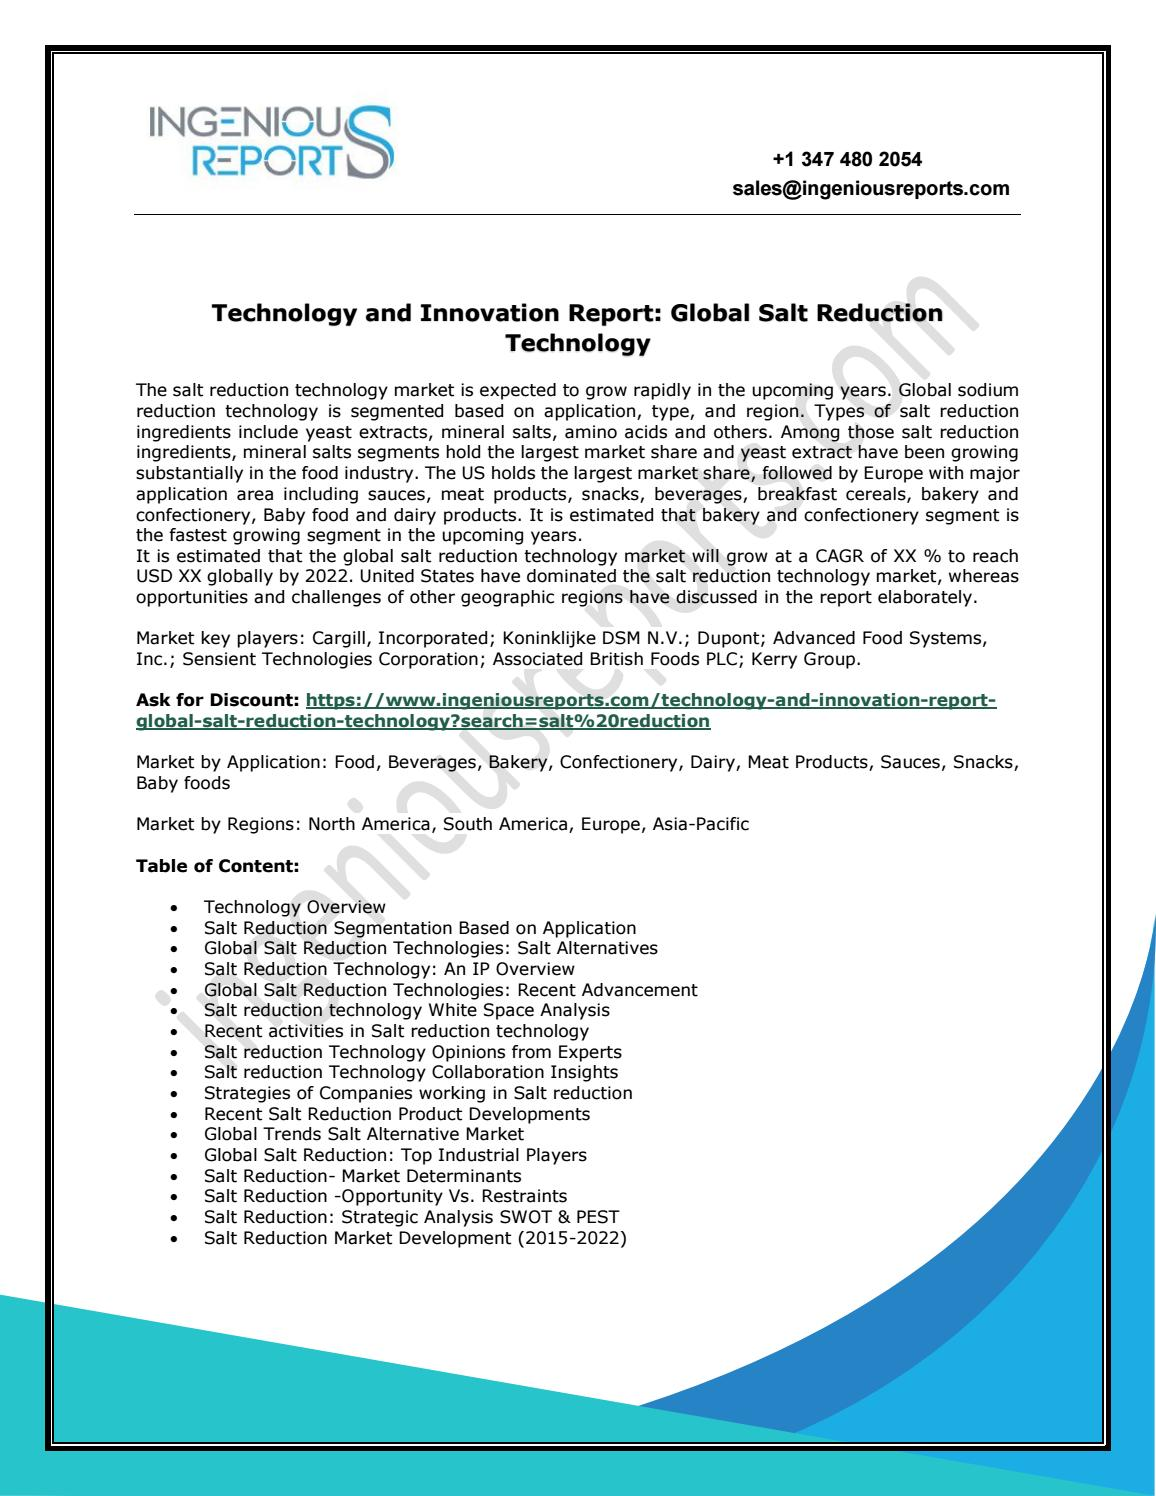 Ingenious Reports: Salt Reduction Technology Trends and Analysis by